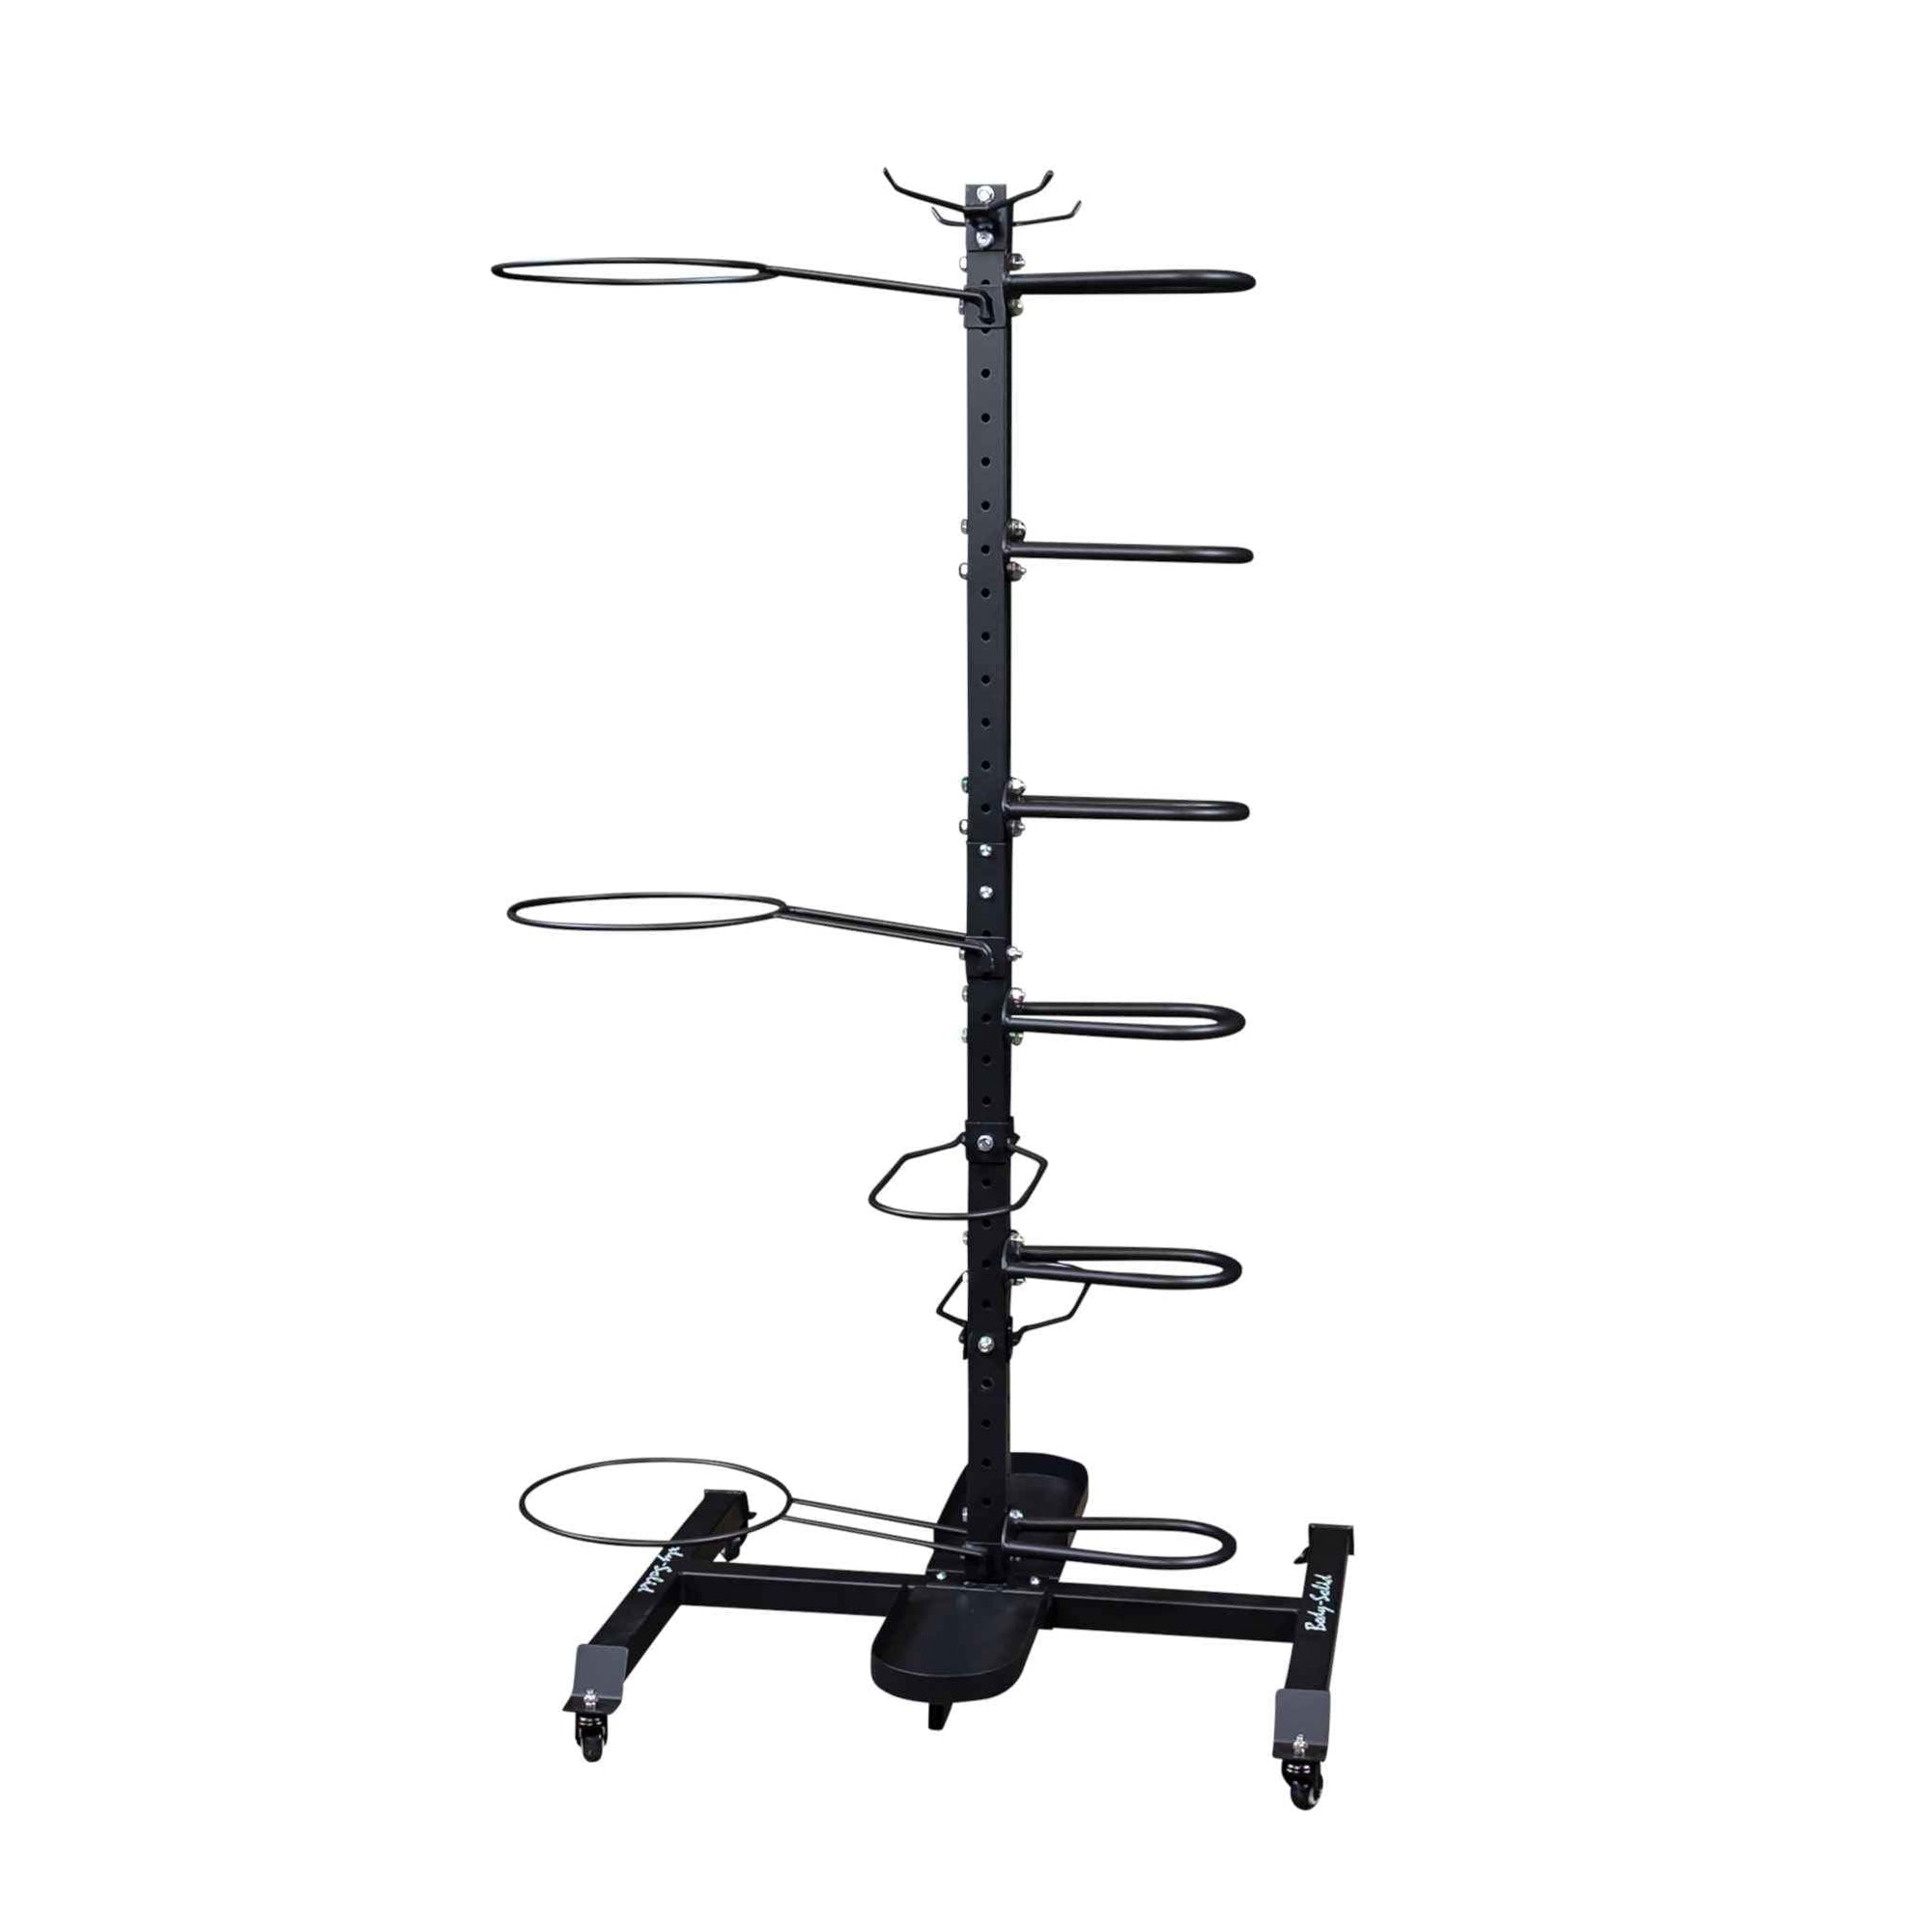 Body-Solid GAR100 Multi Accessory Rack storage rack Body-Solid